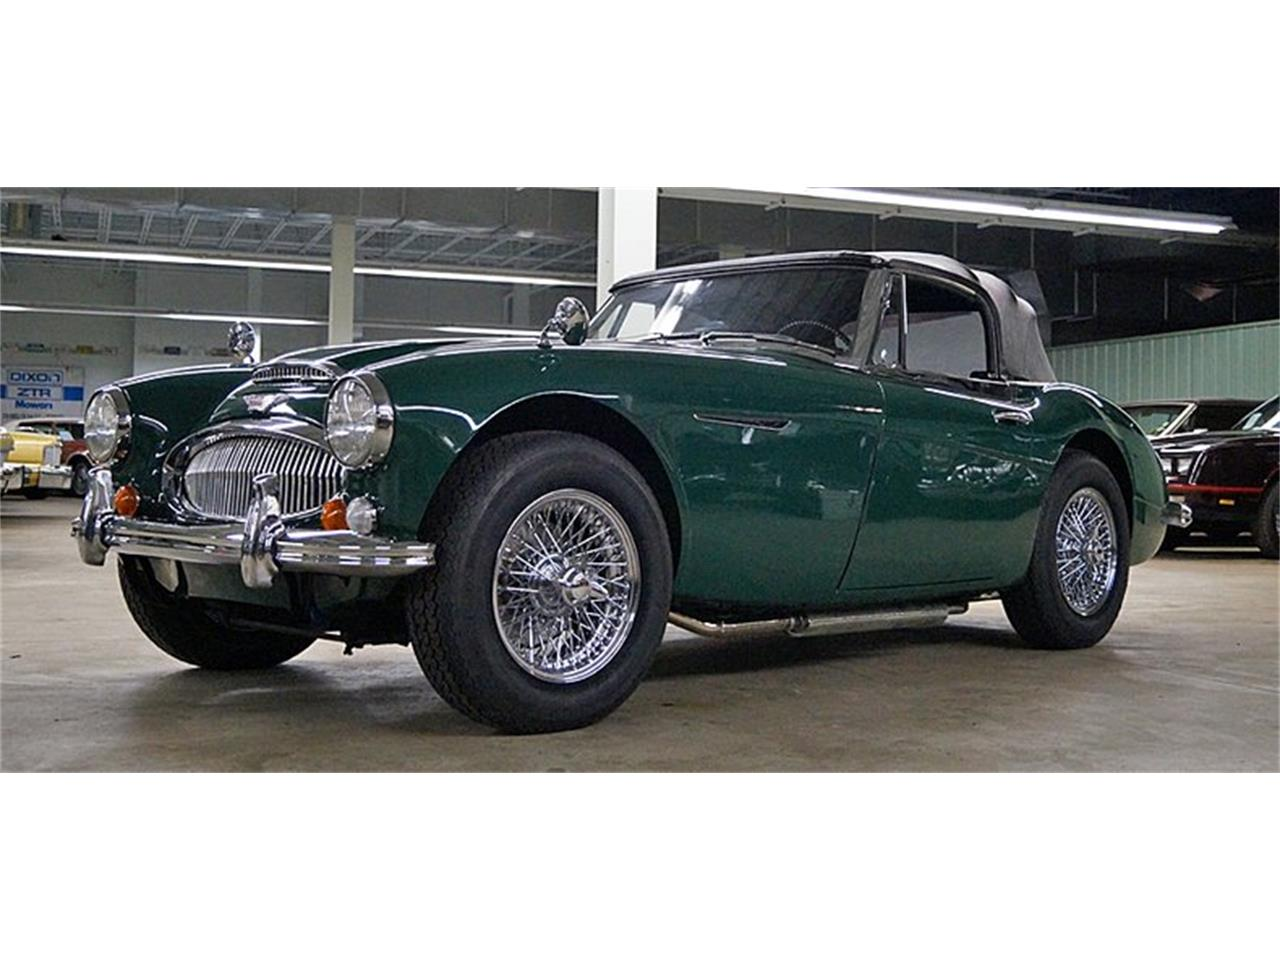 Large Picture of '67 Austin-Healey 3000 Mark III BJ8 Auction Vehicle - R16P